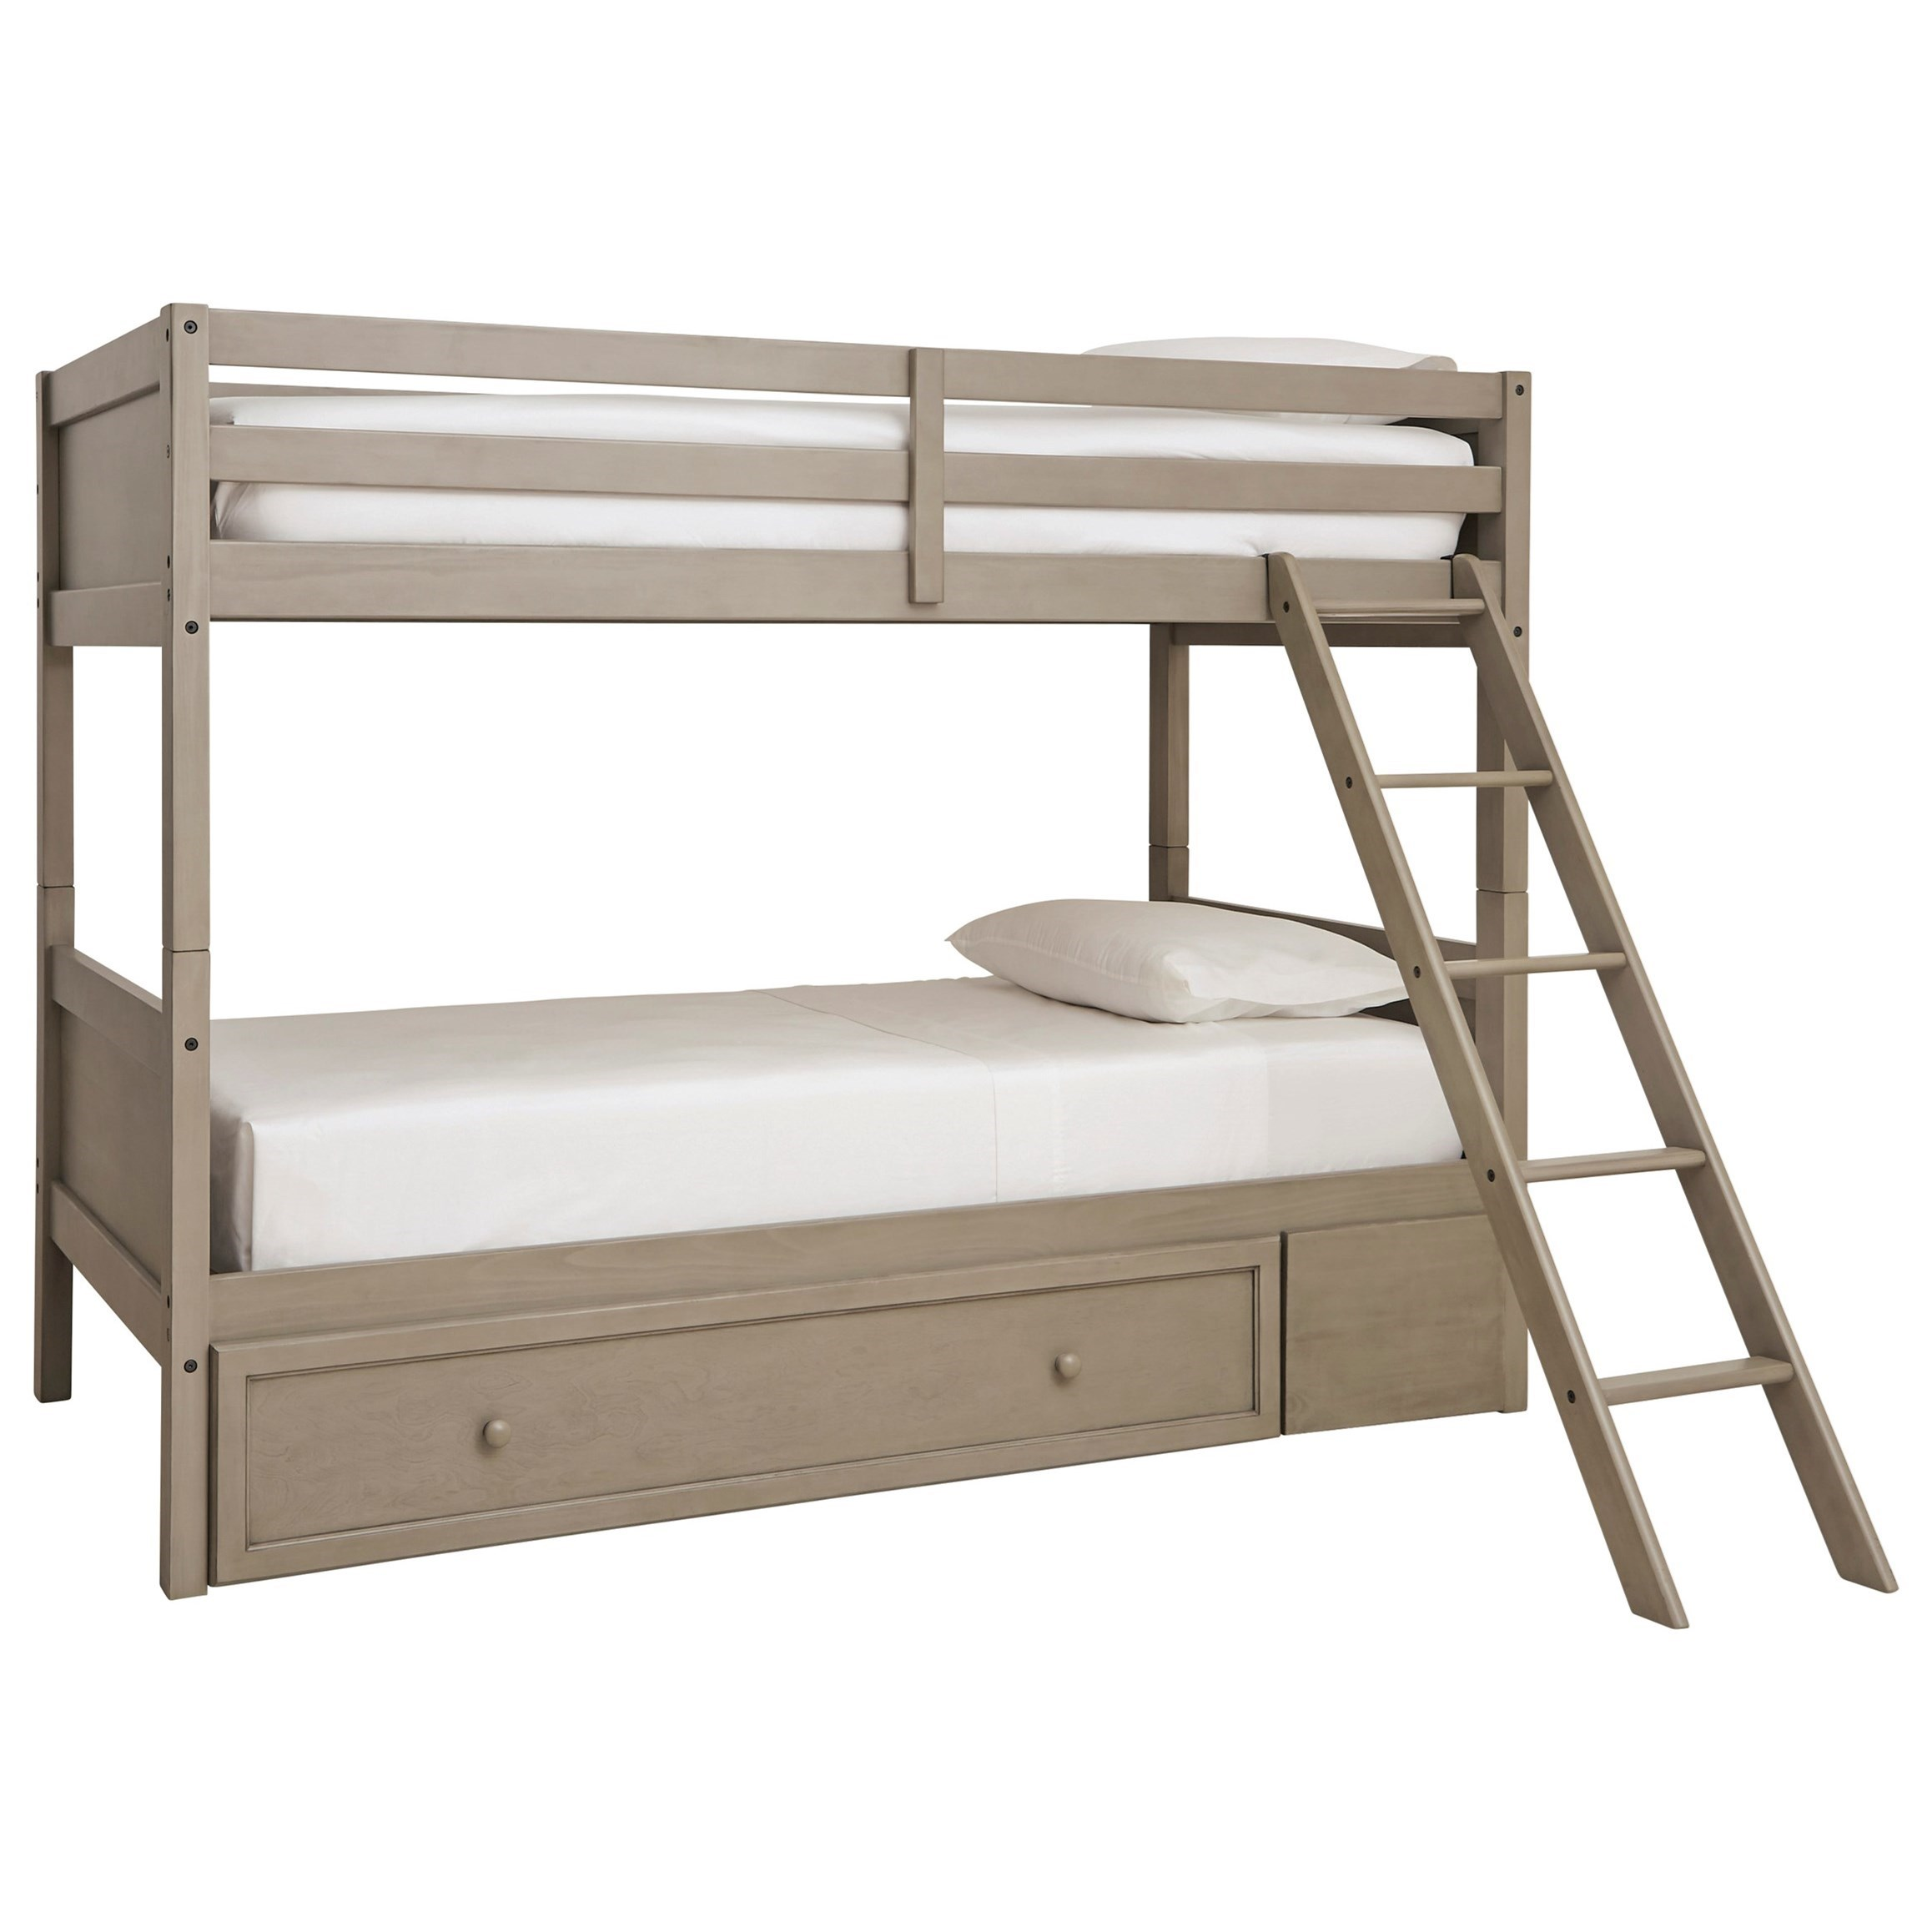 Lettner Twin/Twin Bunk Bed w/ Ladder & Storage by Signature Design by Ashley at Beck's Furniture